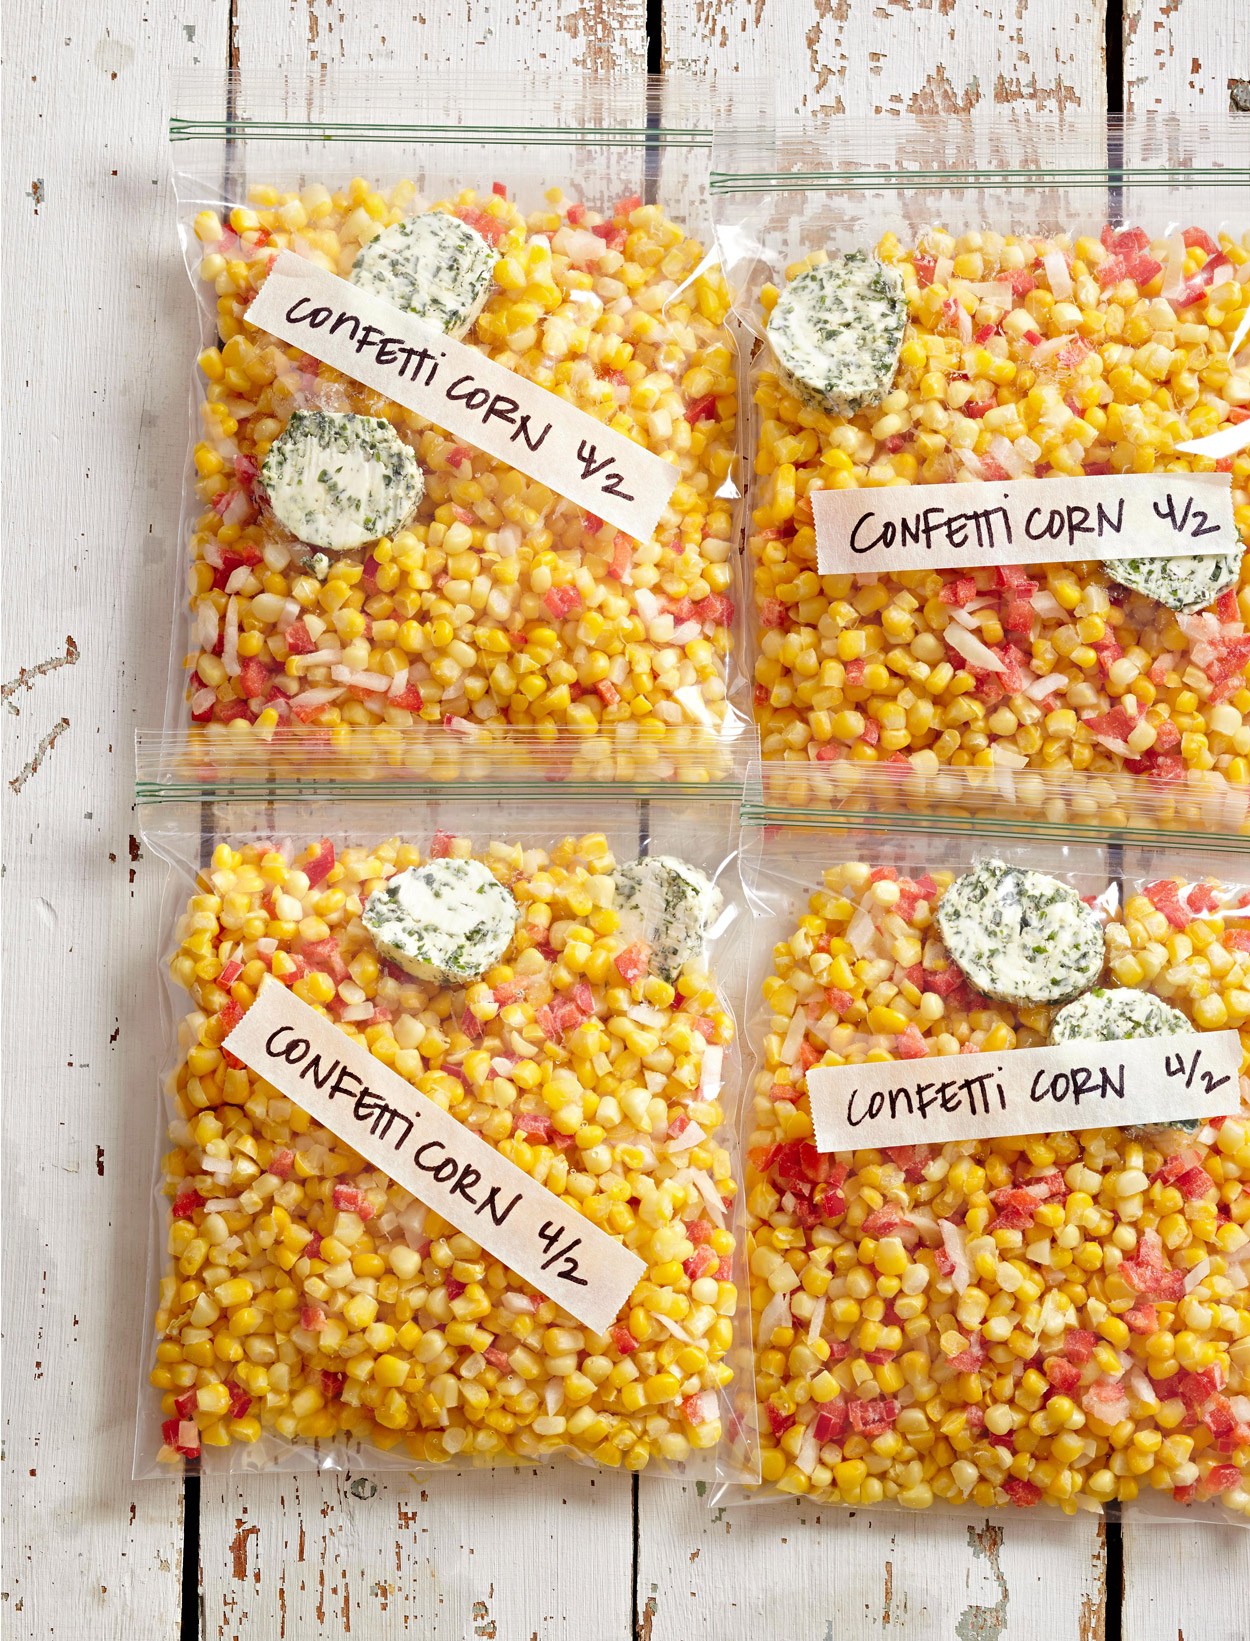 four labeled bags of freezer confetti corn